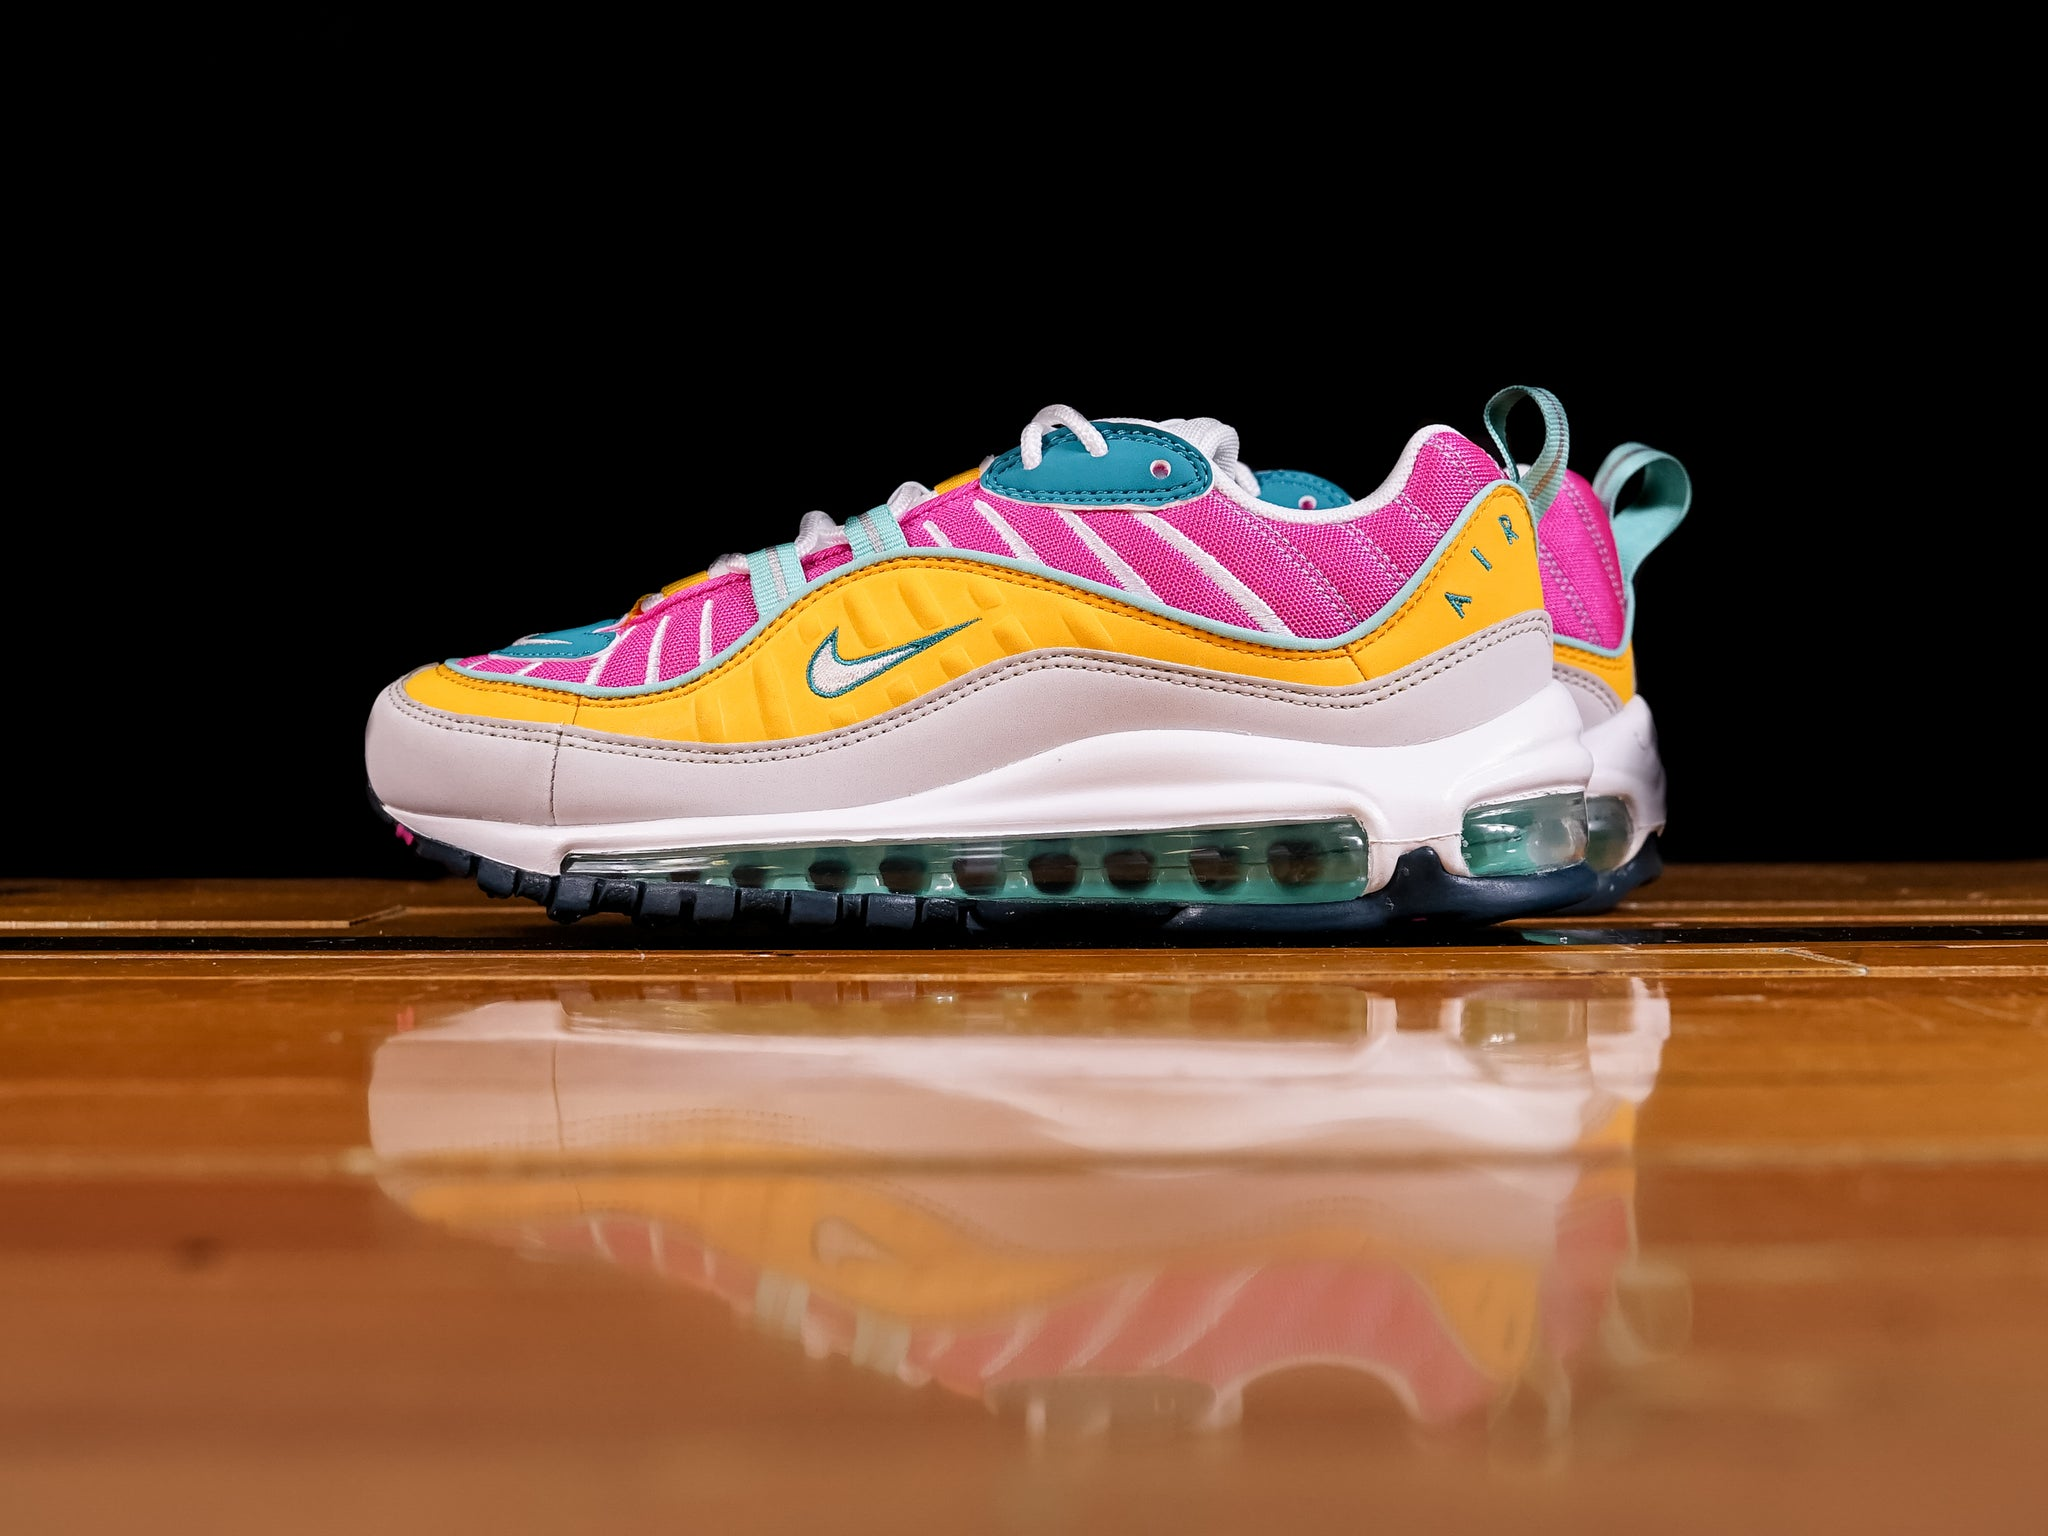 Nike Air Max 98 Easter CI9897 301 Store List |